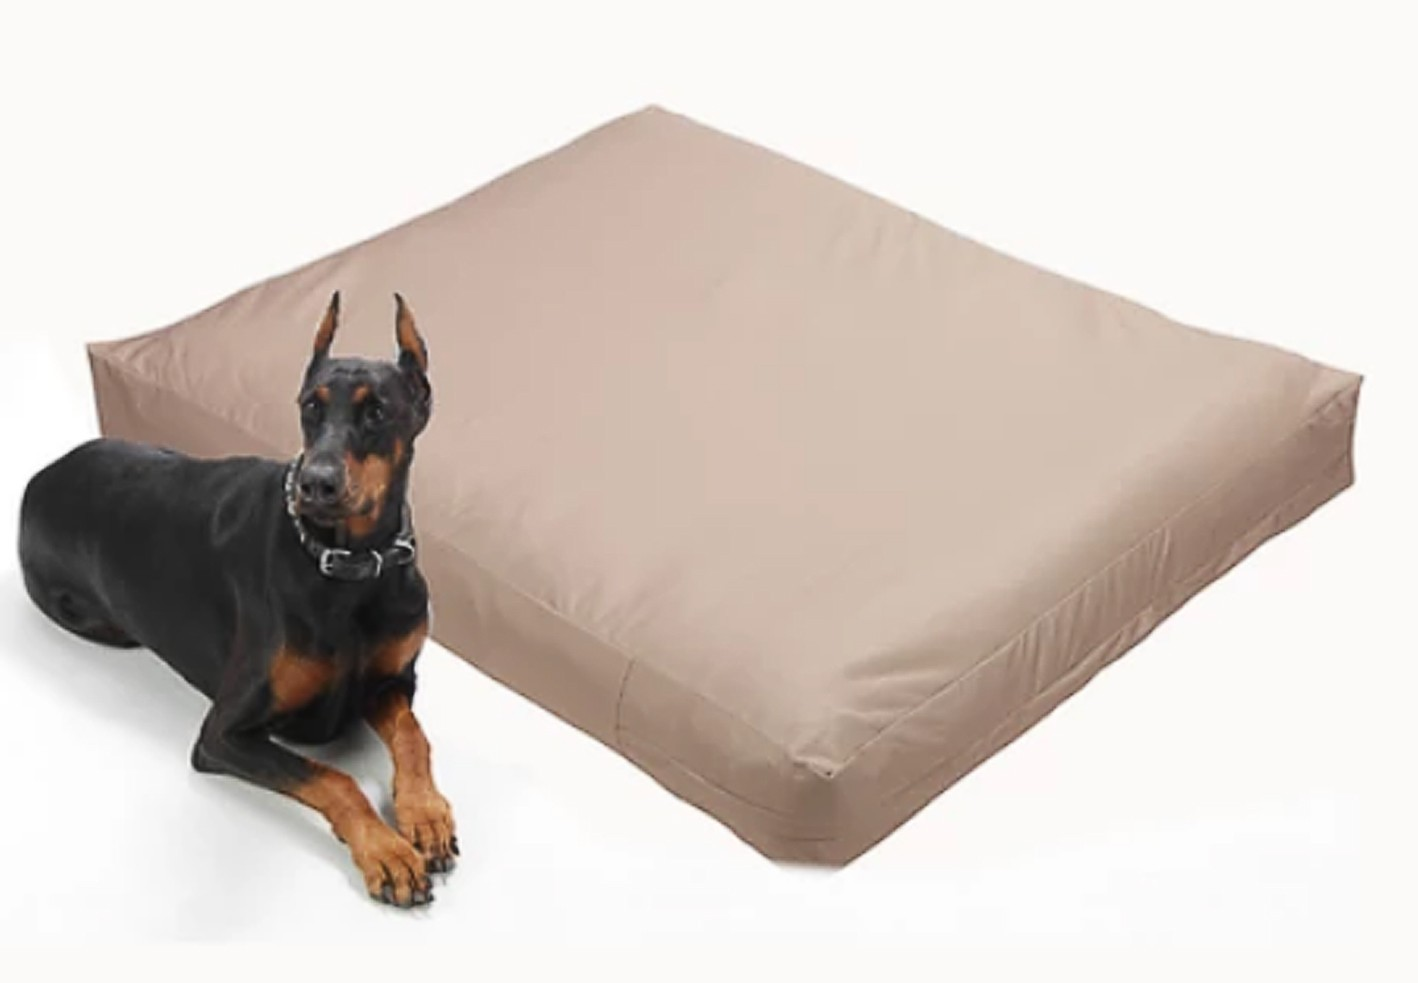 How to Protect Your Dogs Bed Keep It Smelling Fresh - Premium Waterproof Dog Bed Liner